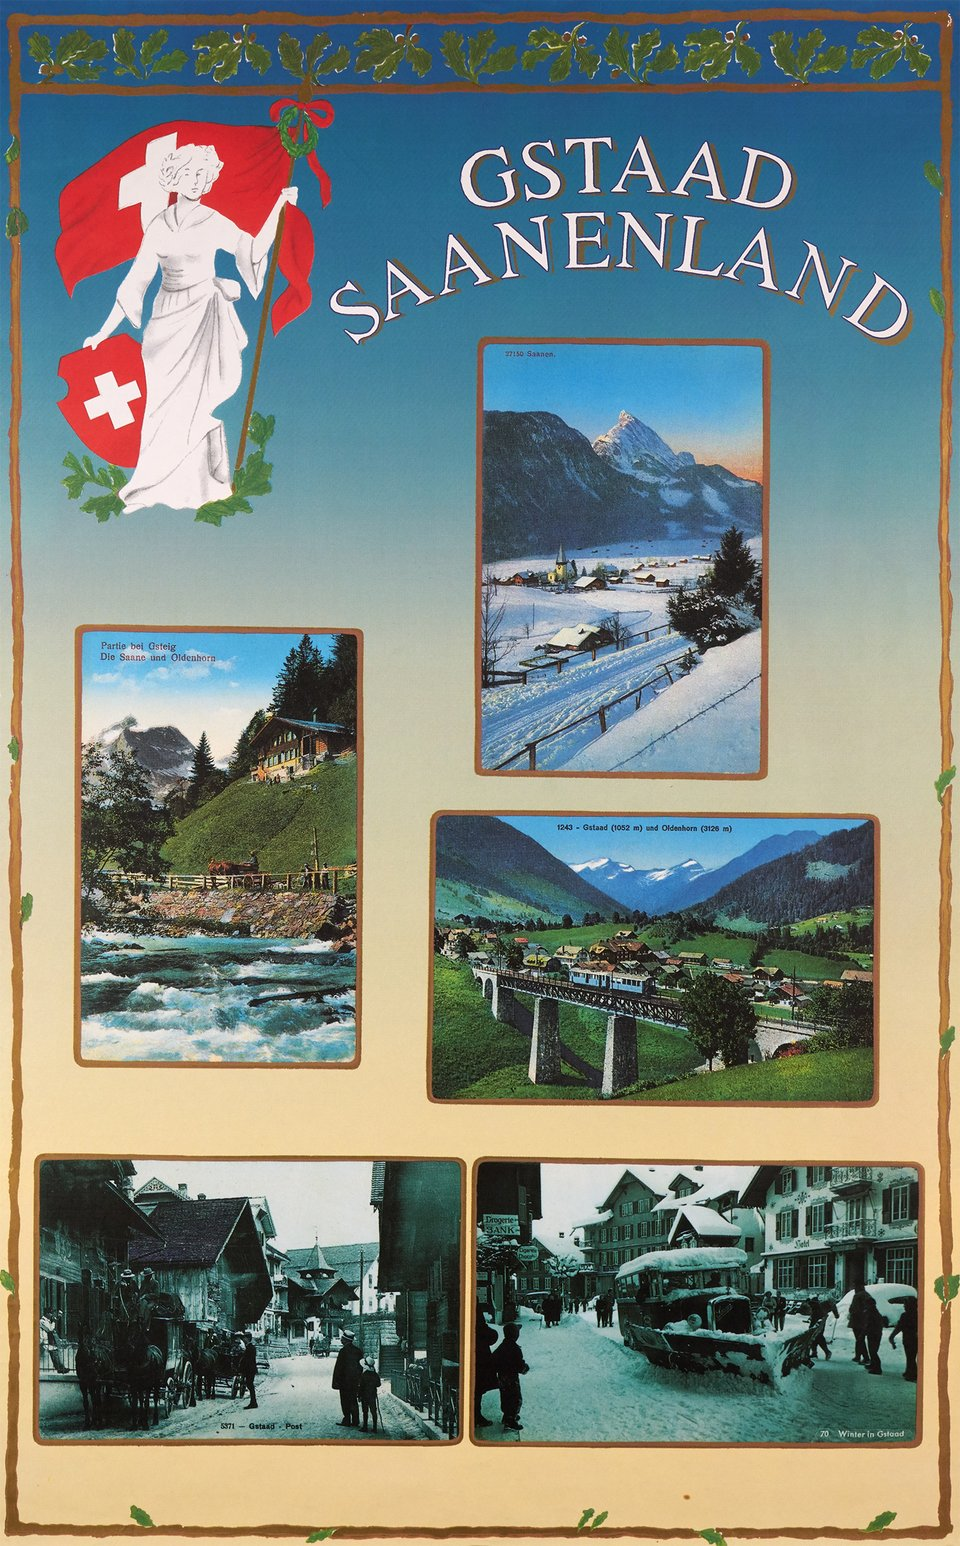 Gstaad Saanenland – Vintage poster – ANONYMOUS – 1975